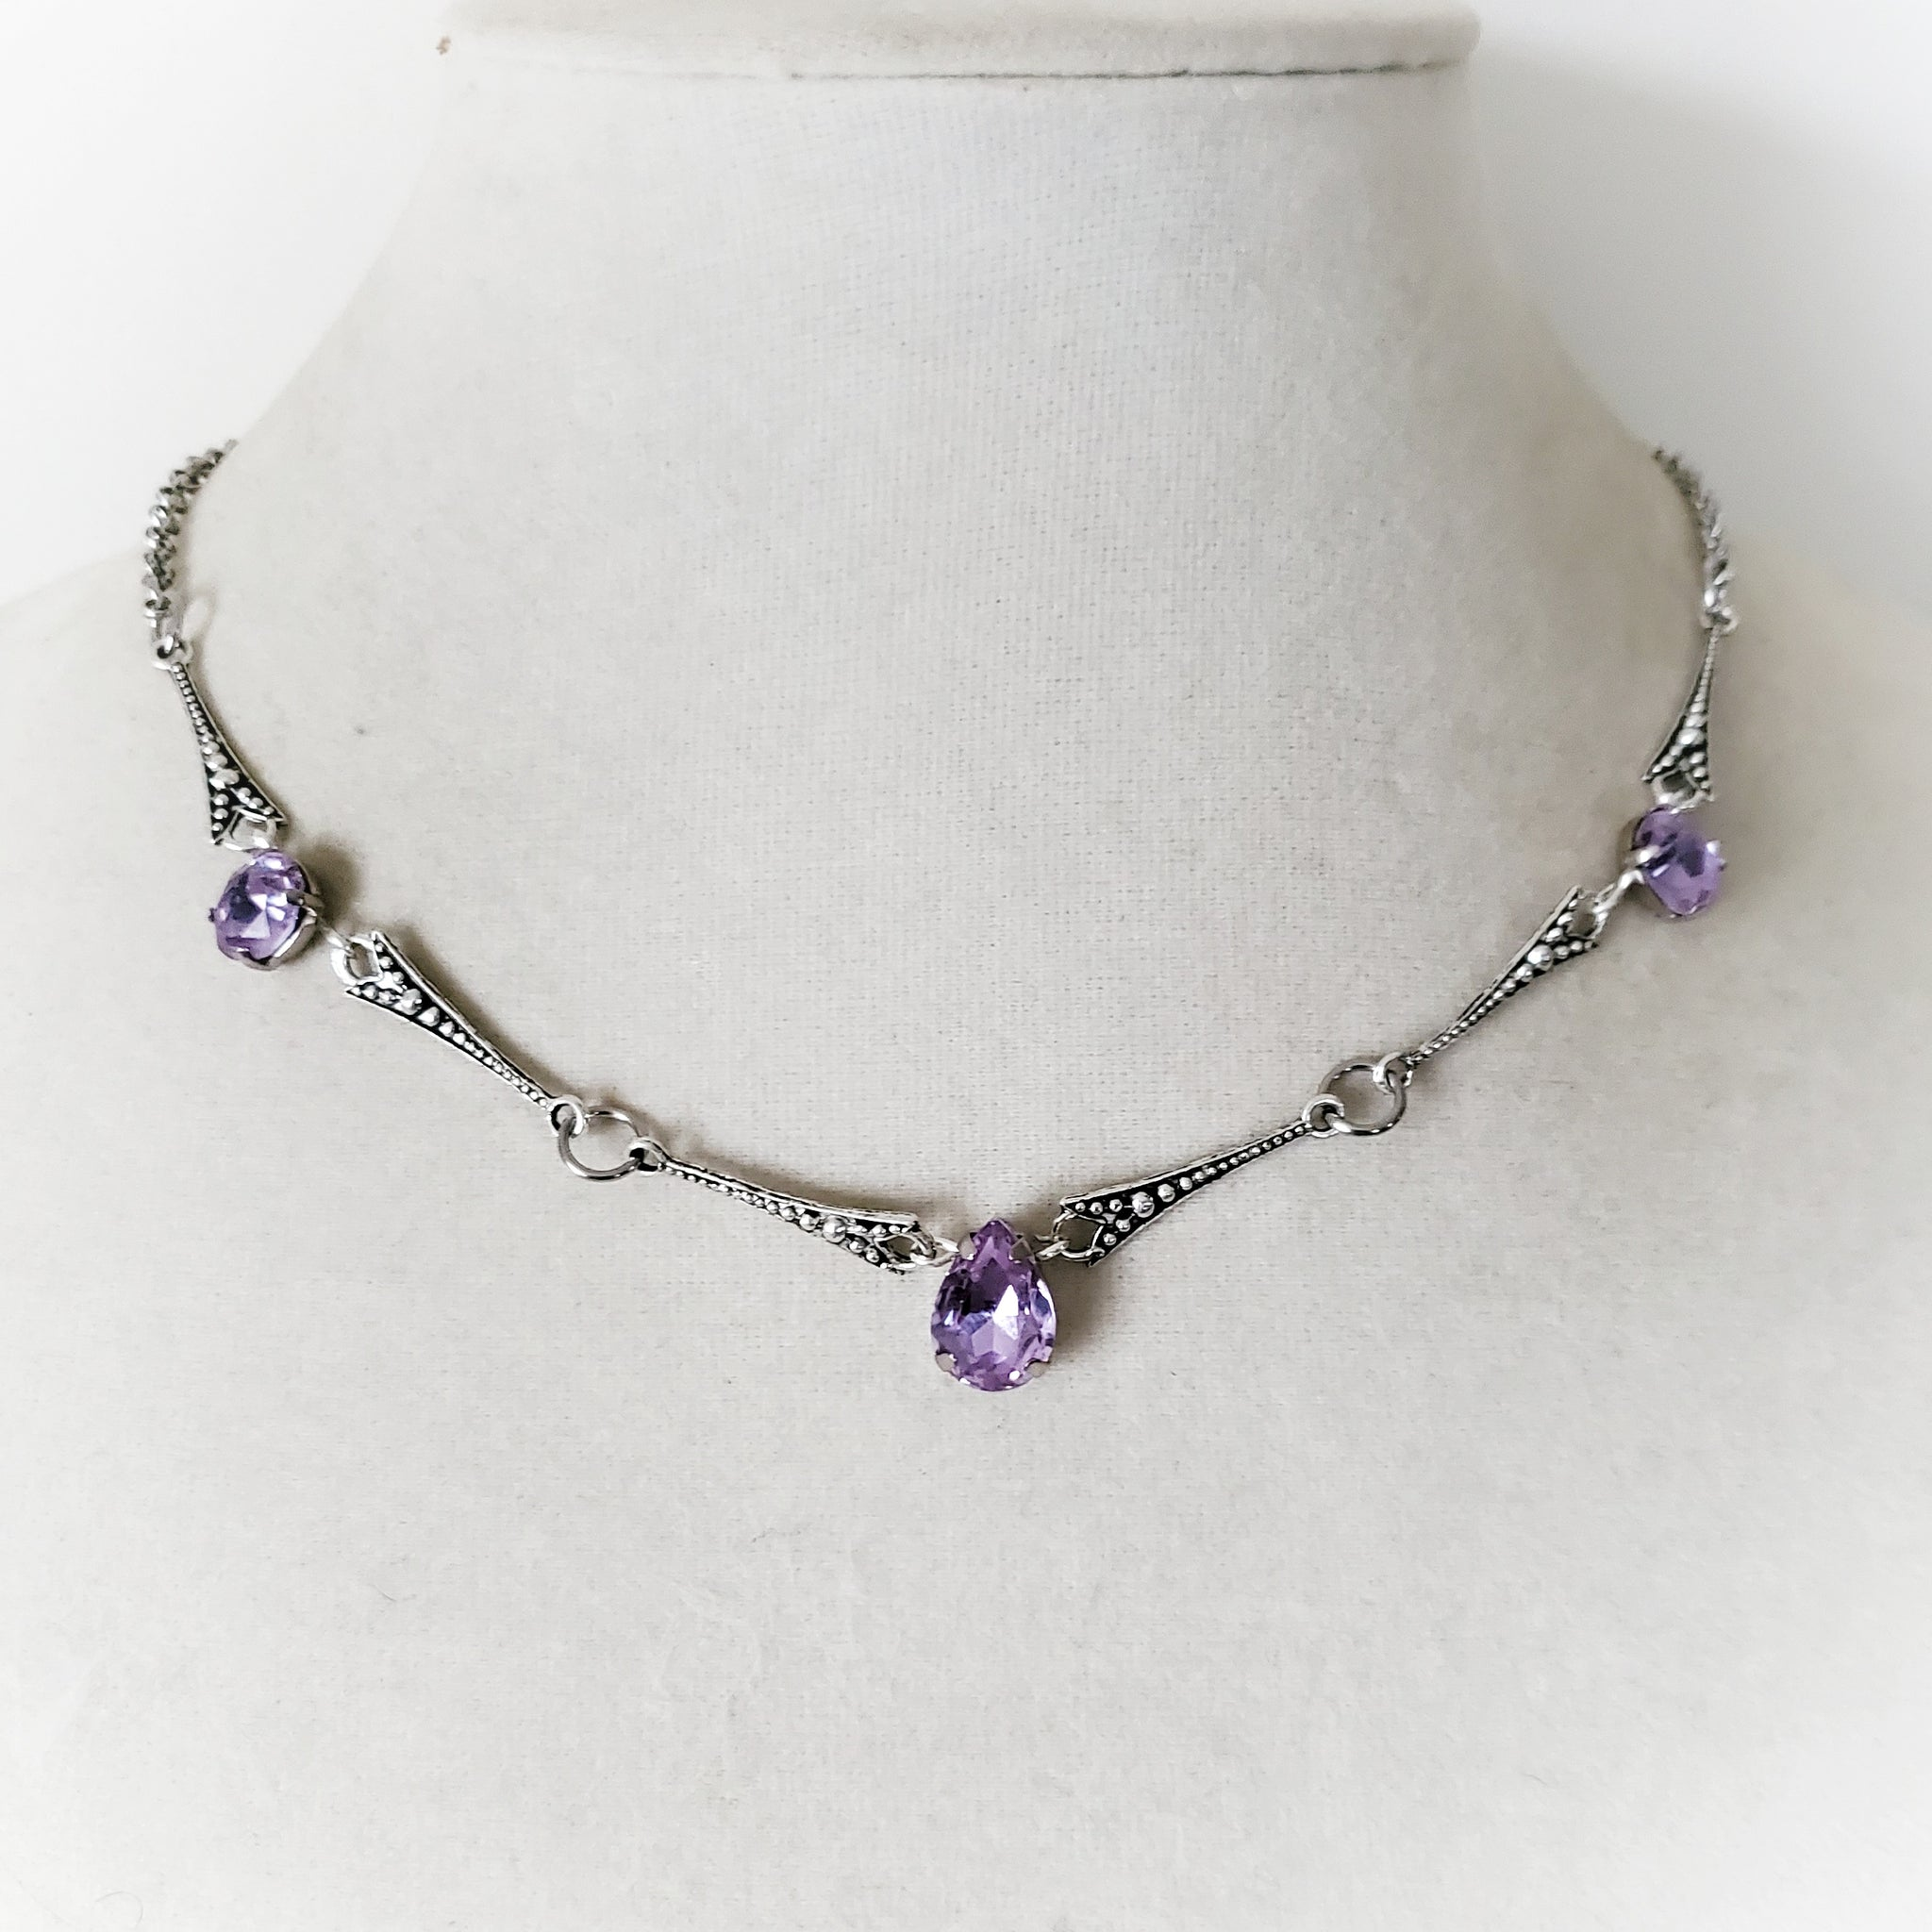 Art Deco Rhinestone Necklace in Purple, Red, or Green